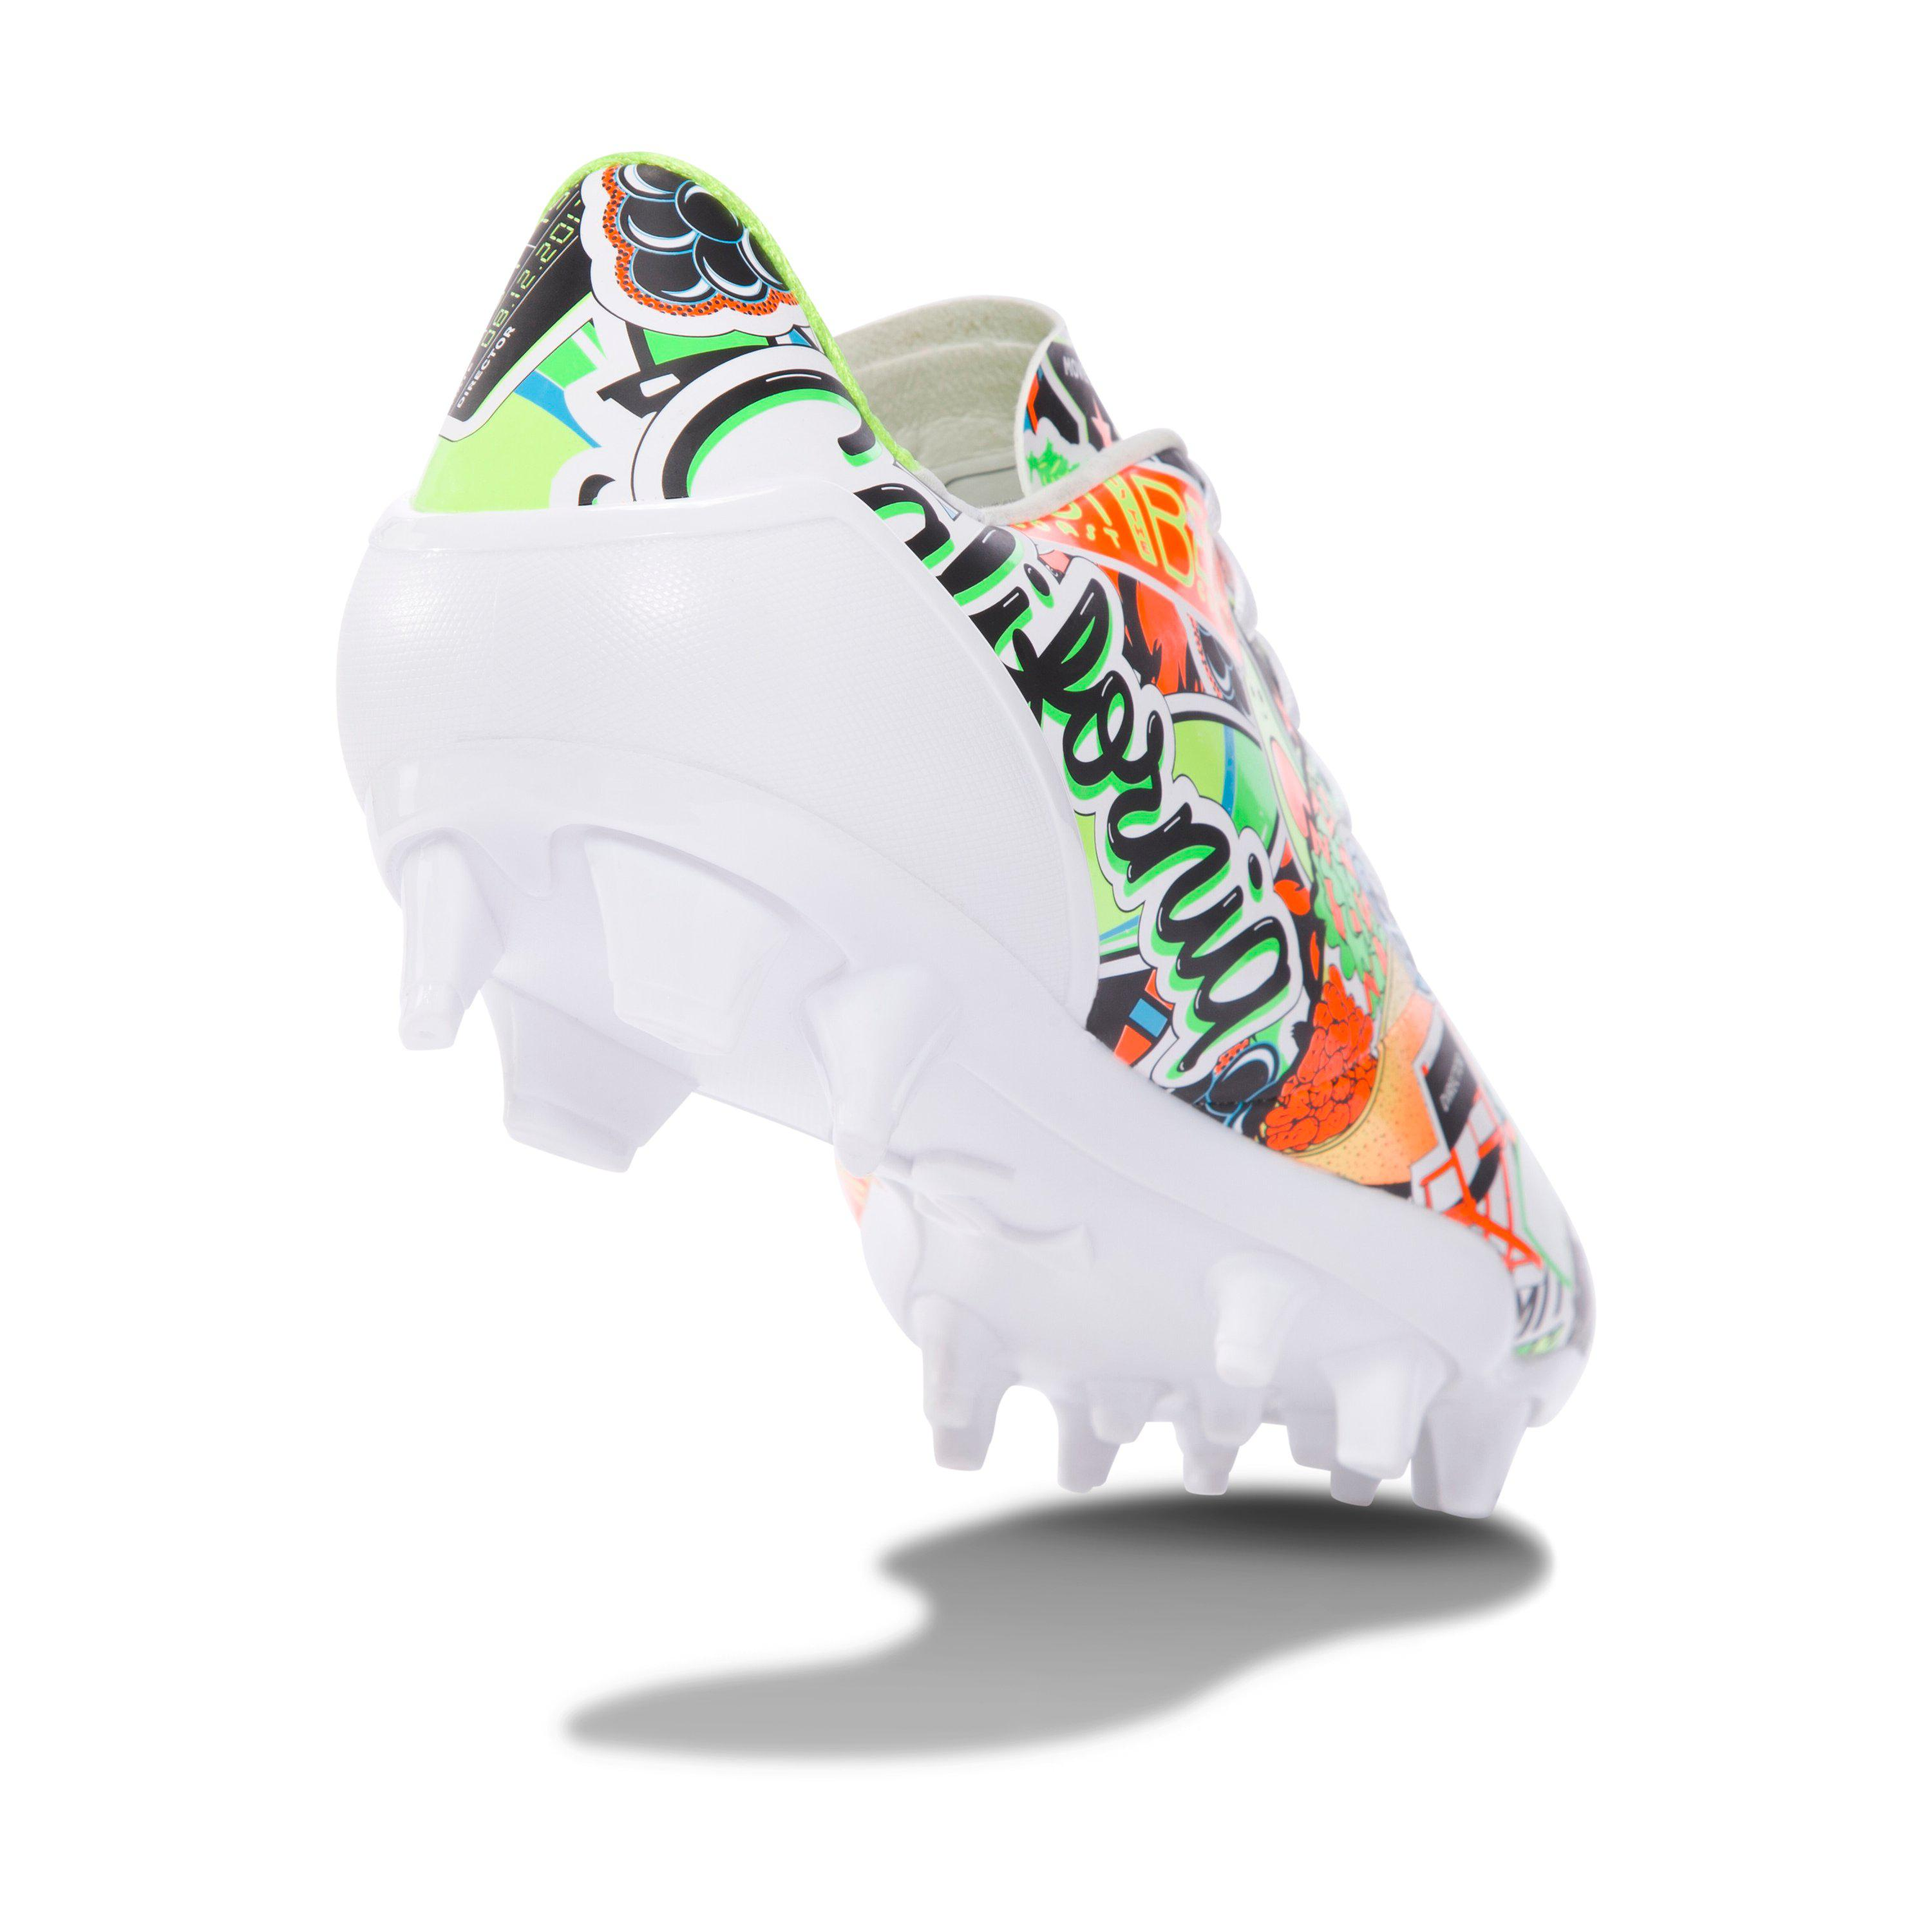 cheap for discount 0b6a5 af1dc Under Armour Men s Ua Spotlight – Limited Edition Football Cleats ...